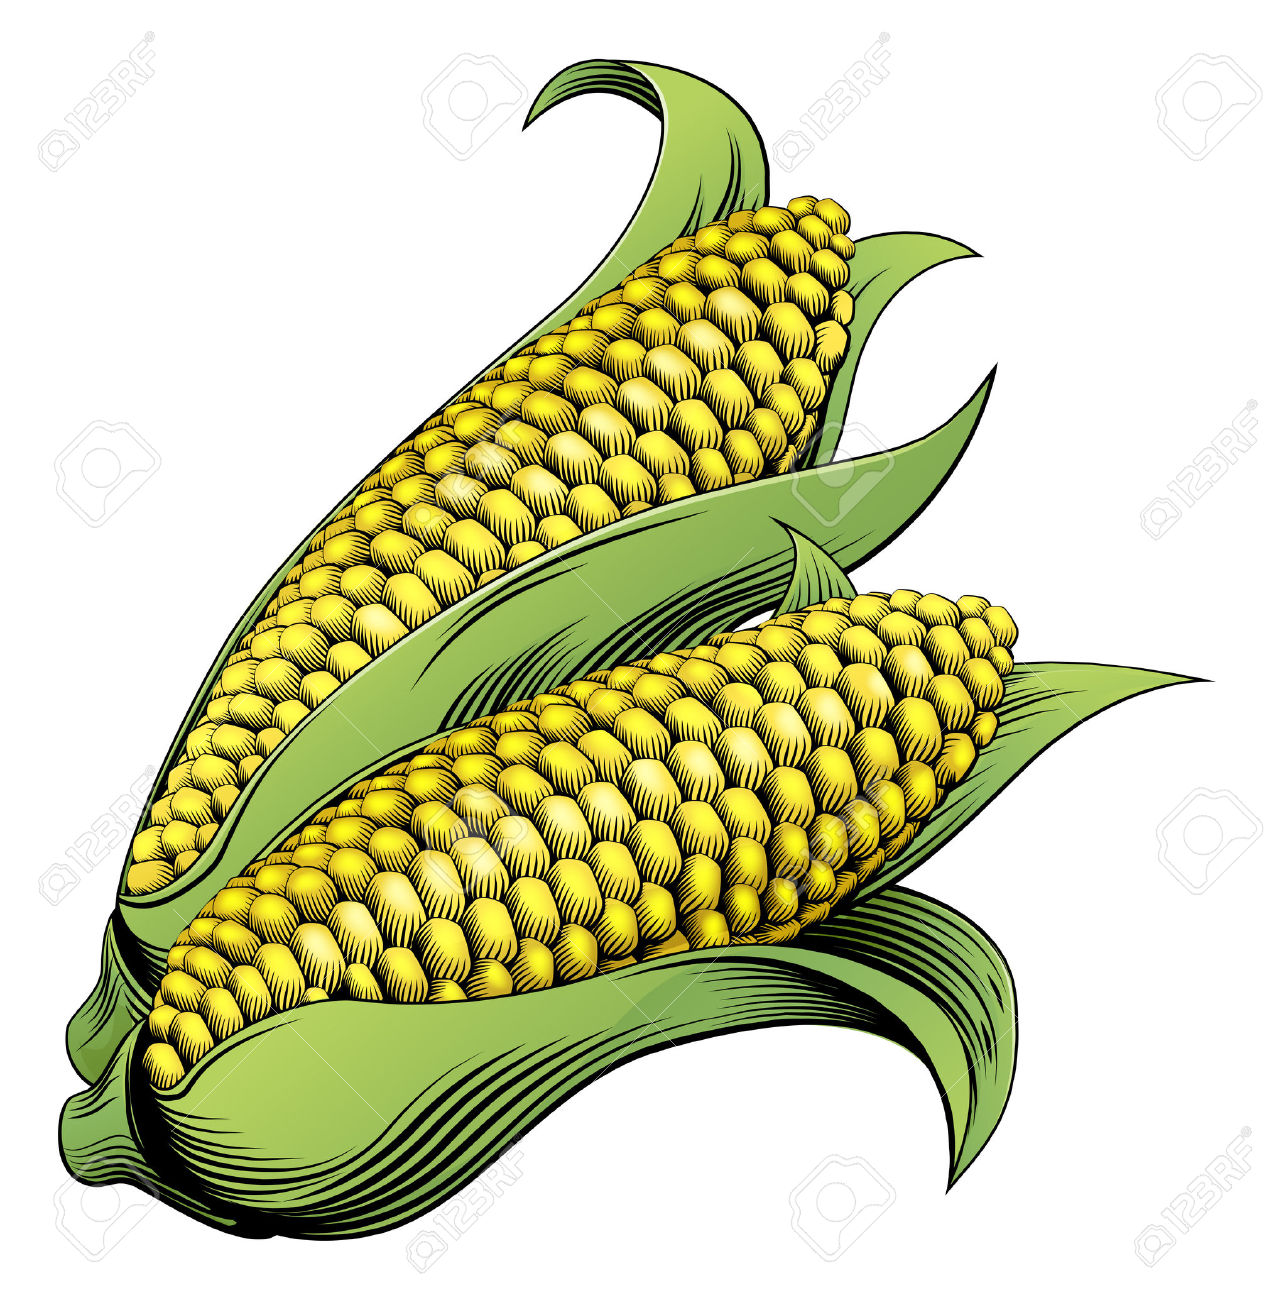 Maize Stock Photos Images. Royalty Free Maize Images And Pictures.